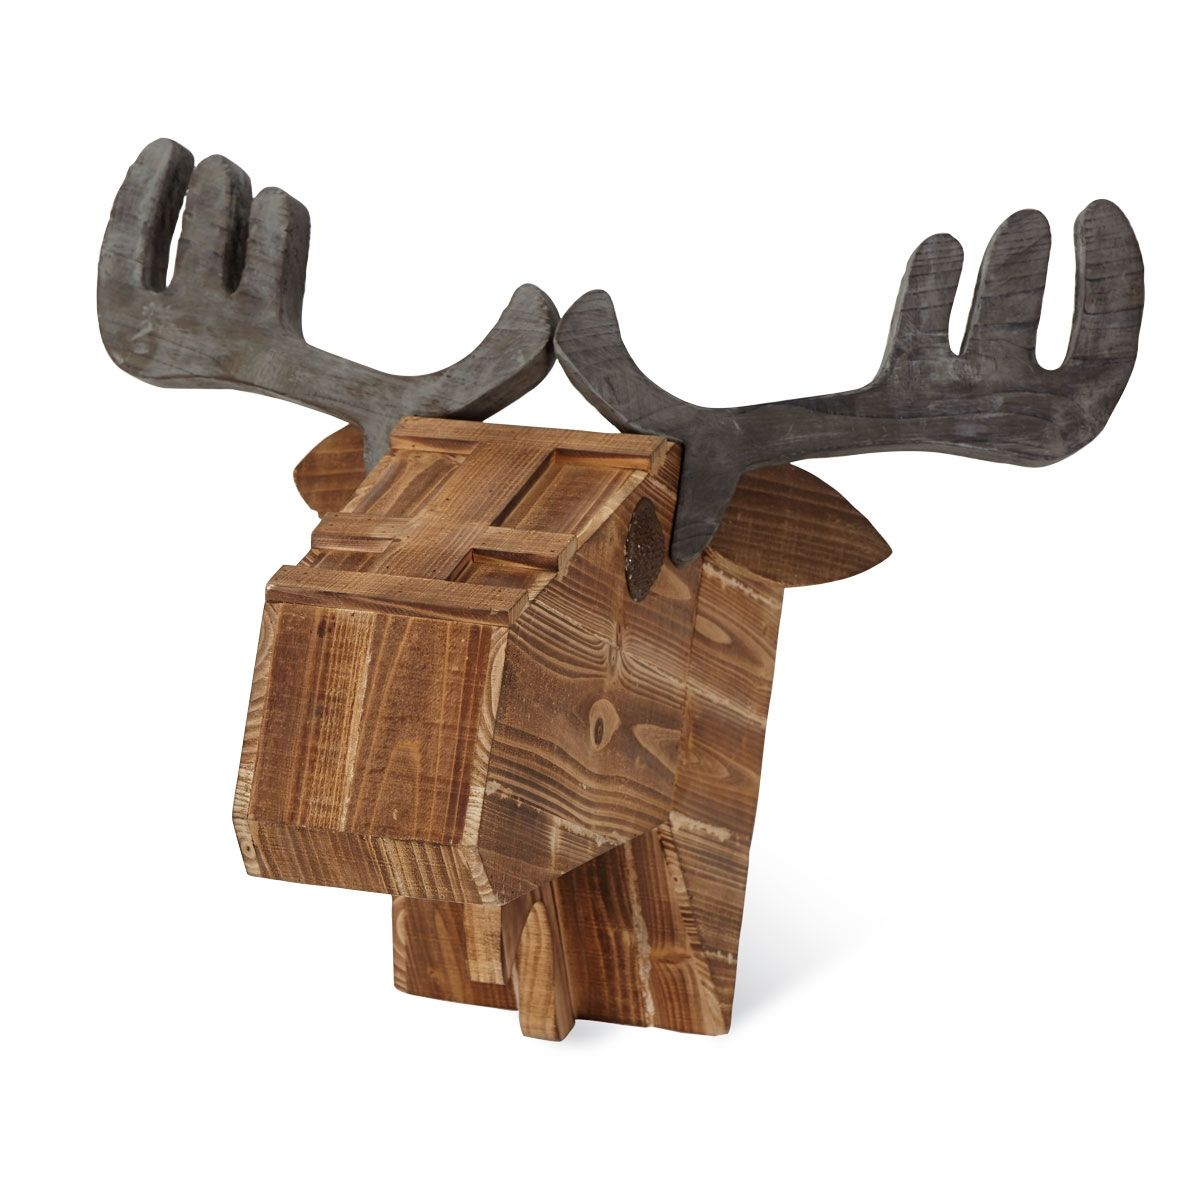 Foreside Home & Garden - Moose Head Wall Decor, Large | Rustic ...